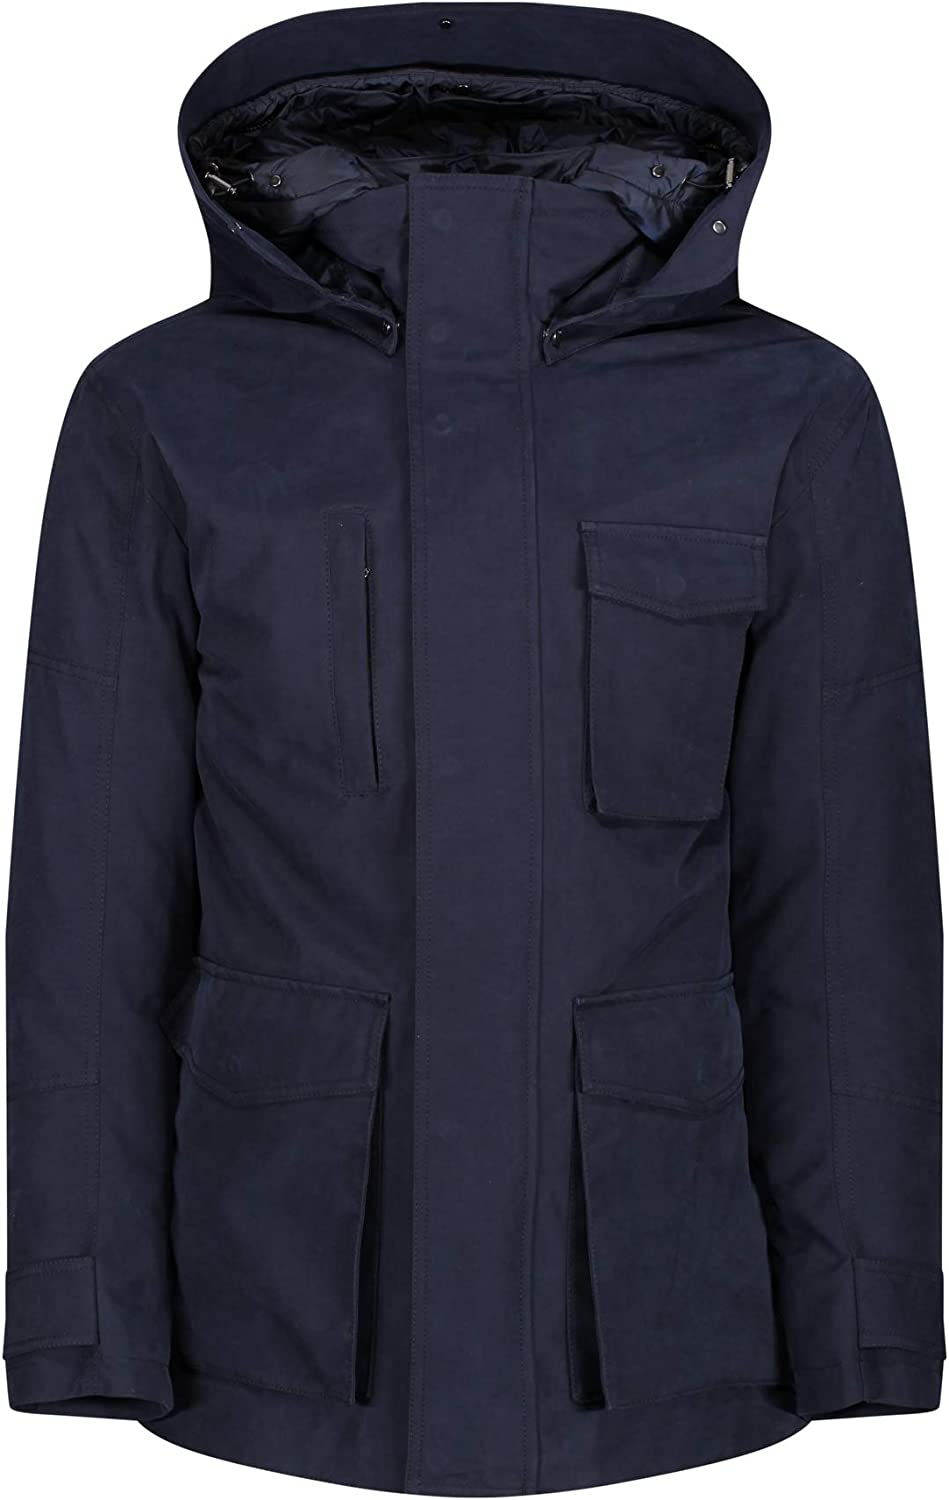 49 Winters The Utility Down Jacket X Large Navy: